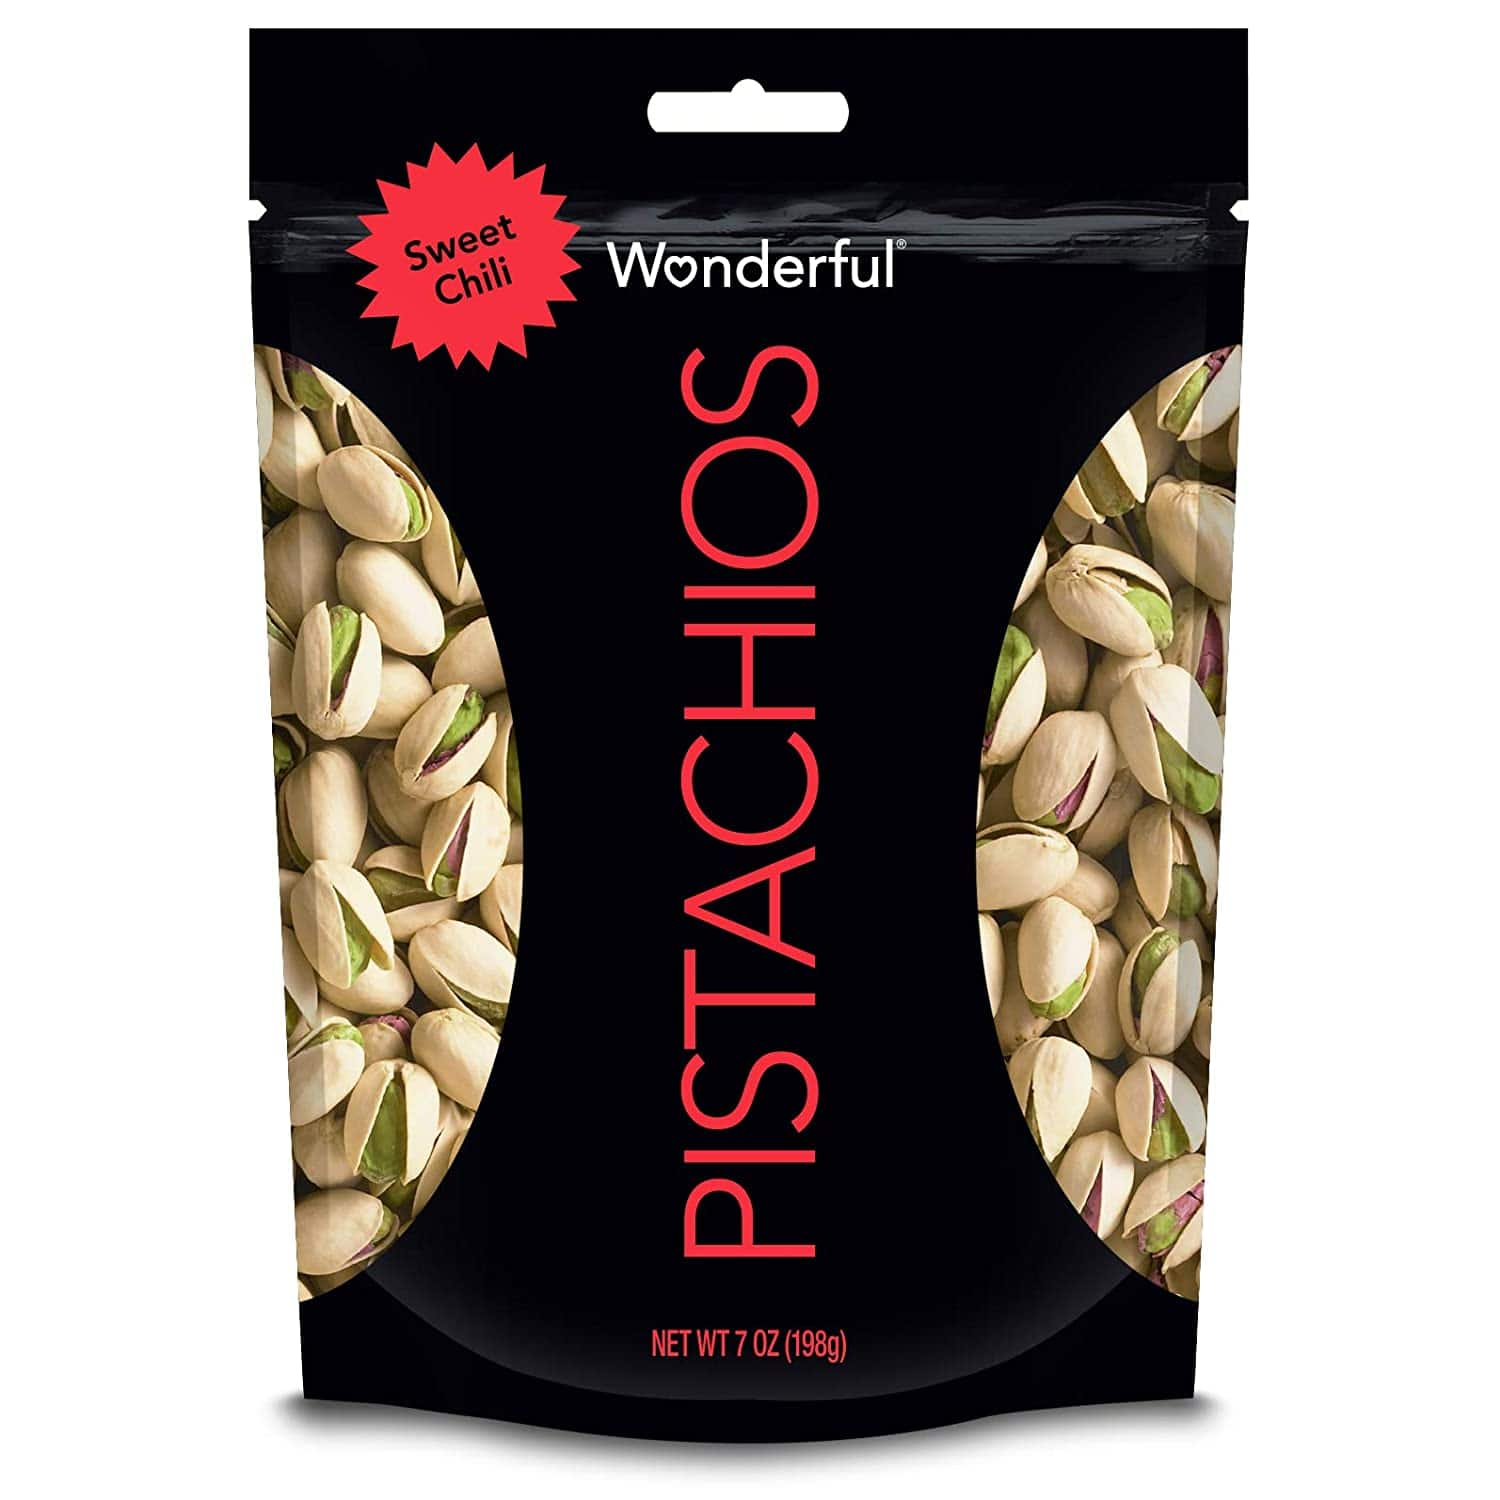 Wonderful Pistachios, Sweet Chili Flavored, 7 Ounce Resealable Pouch - $4.24